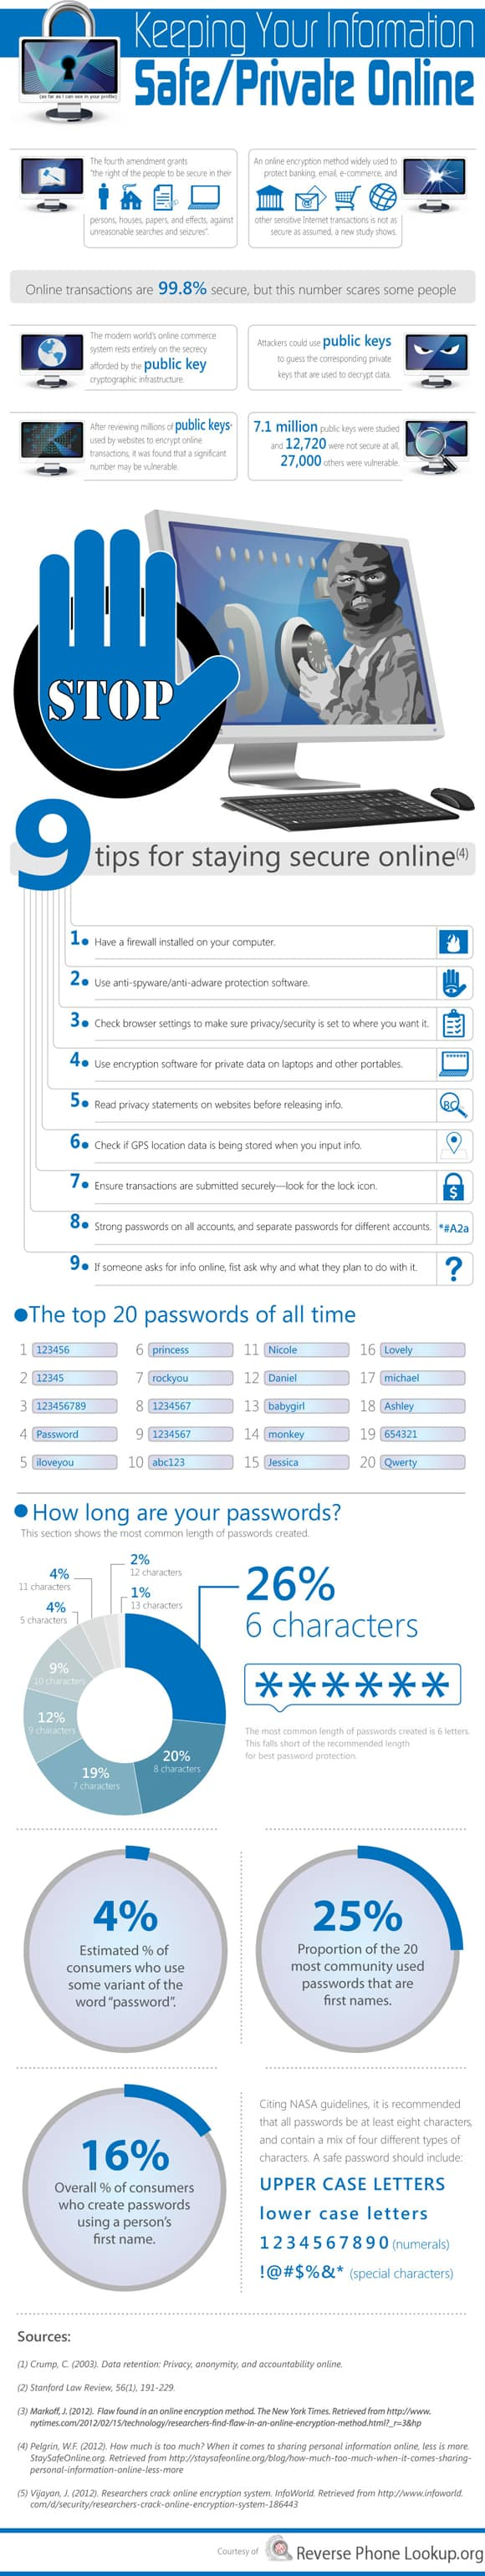 Keeping Your Information Secure Infographic 580 9 Tips For Staying Secure Online (Infographic+Video)